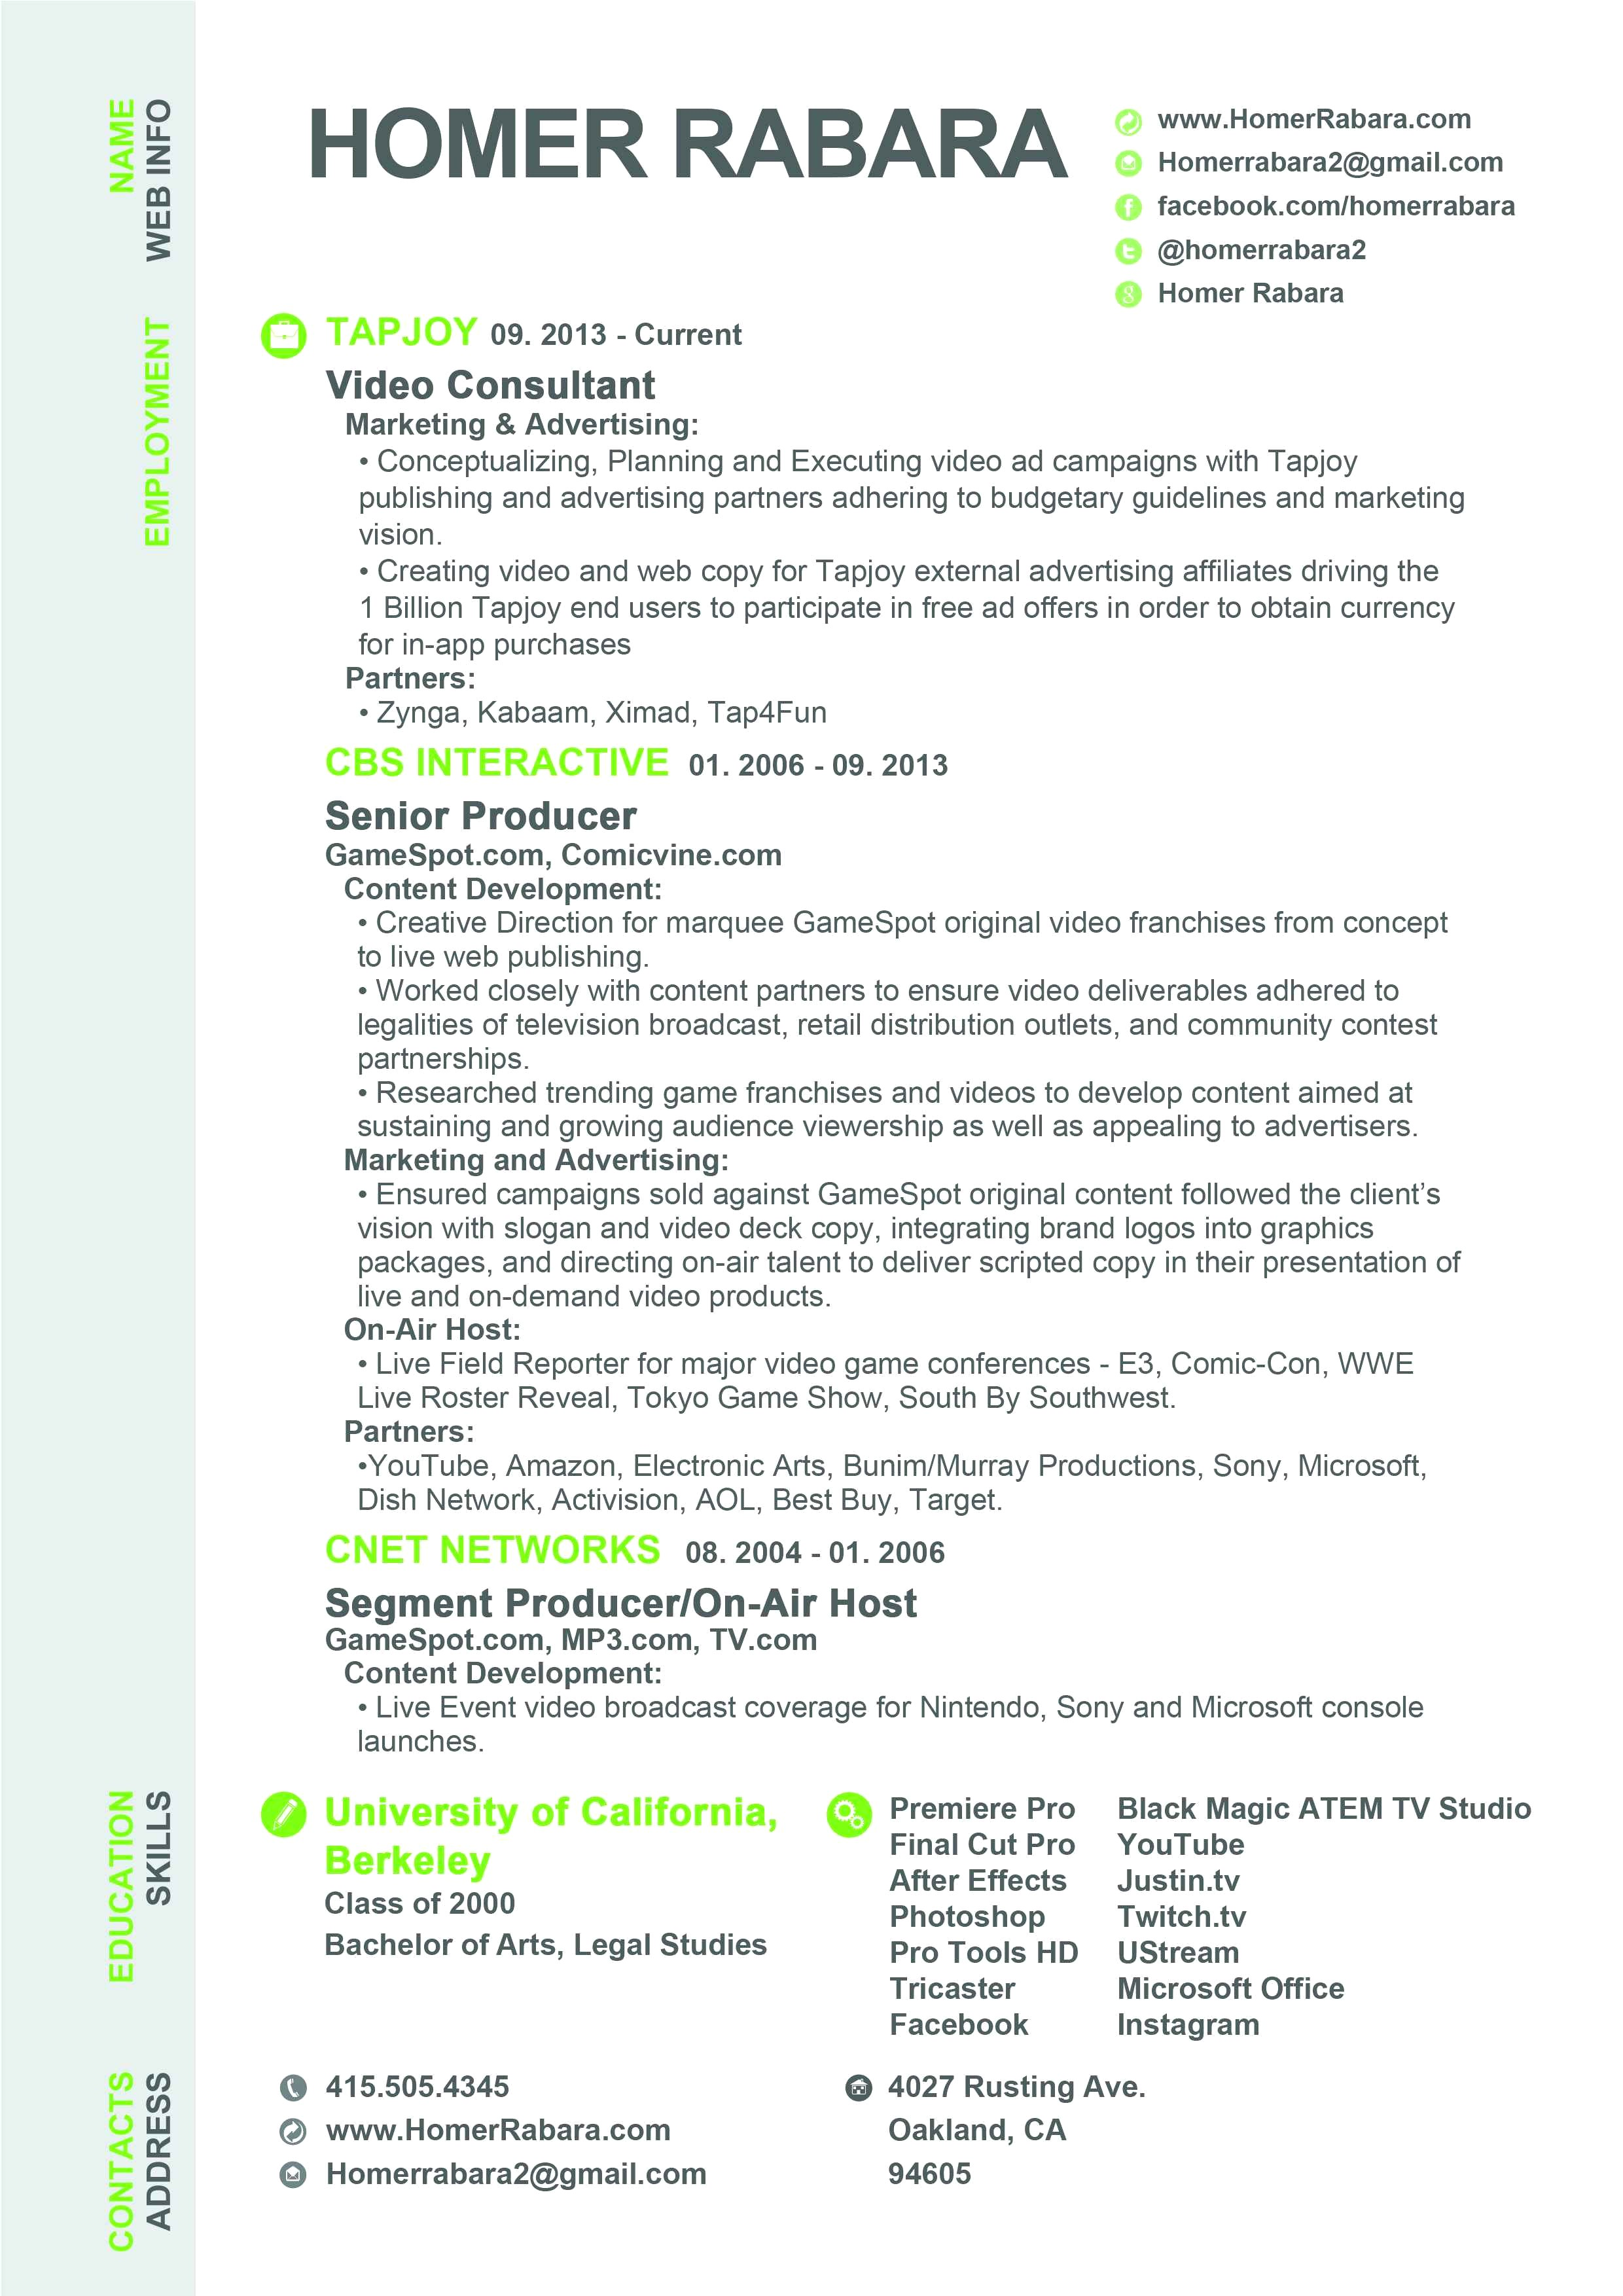 018 Custom College Essays Essay Example The Legitimacy Of Buying Online Editor Resumes Freelance Editing Videographer Resume New Video Excellent Writing Service Full